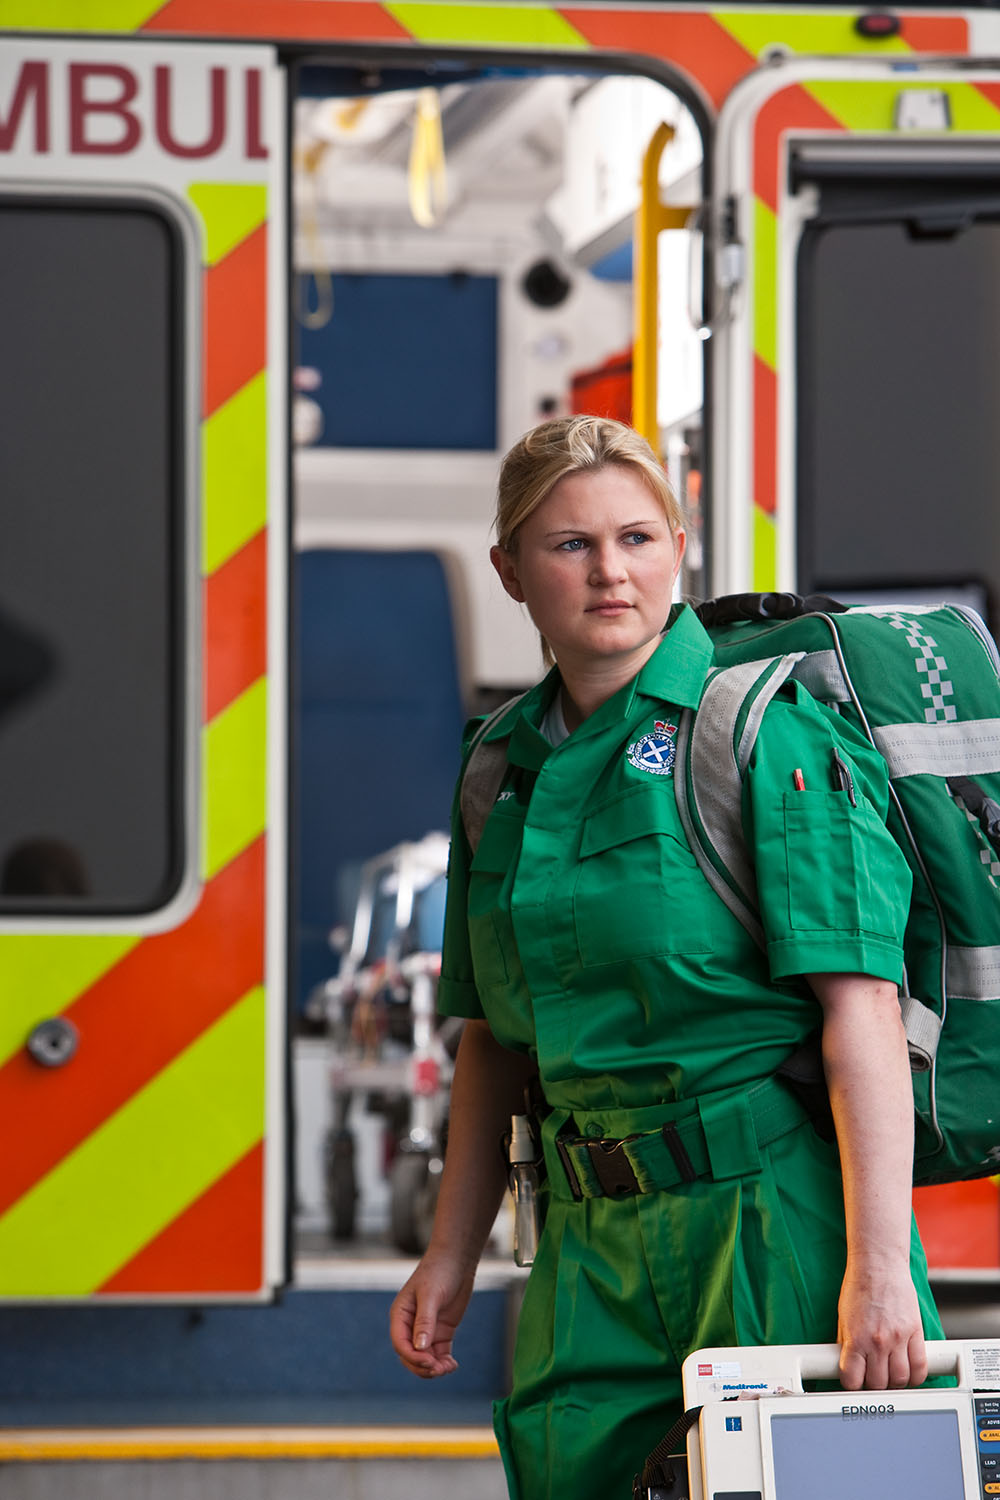 The Paramedic . From a series on how to access the NHS.